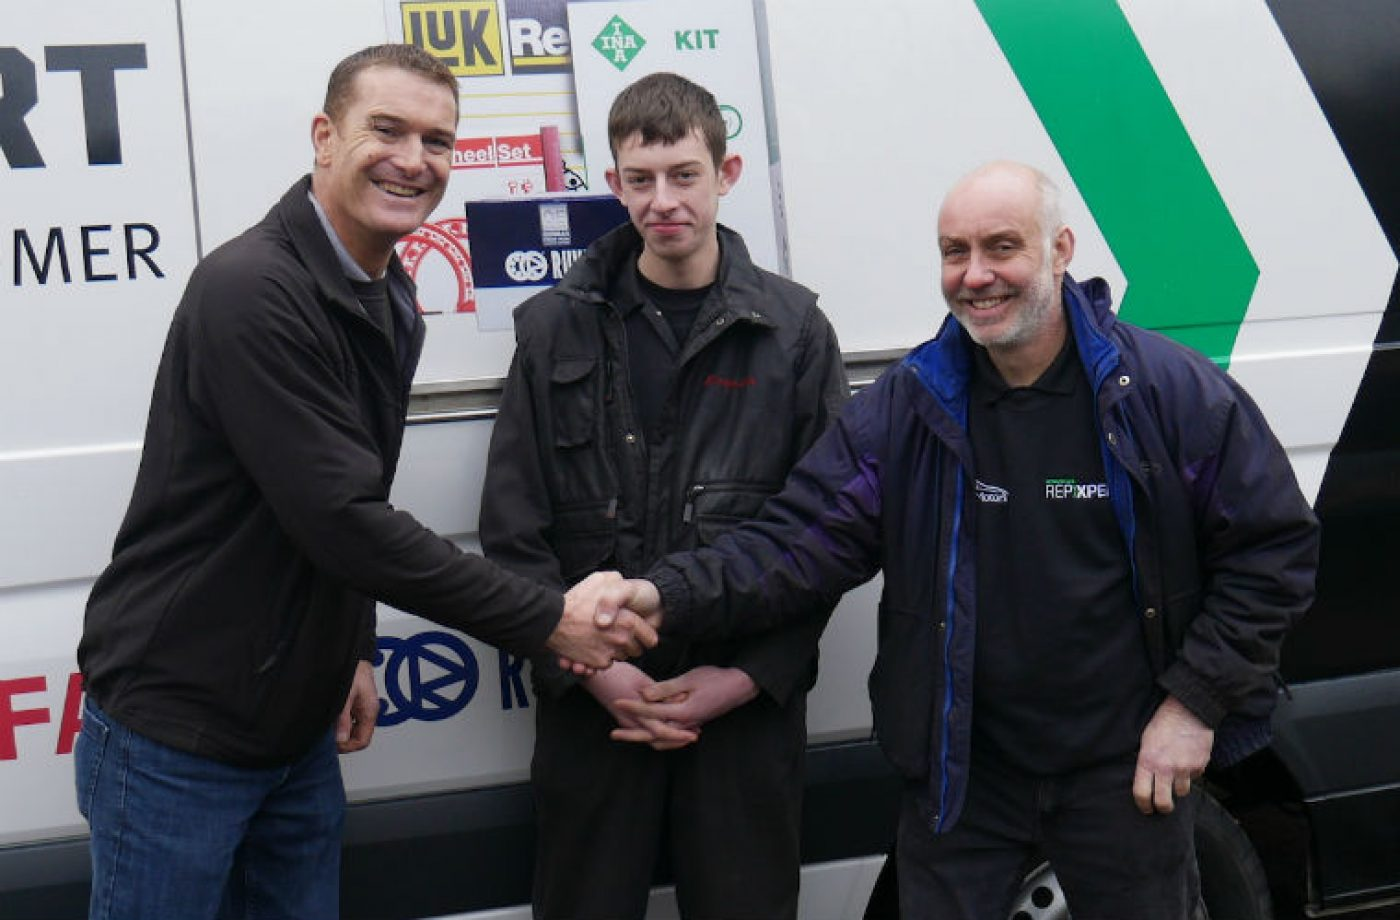 REPXPERT member pleased to be offered free training for first time in 35 years